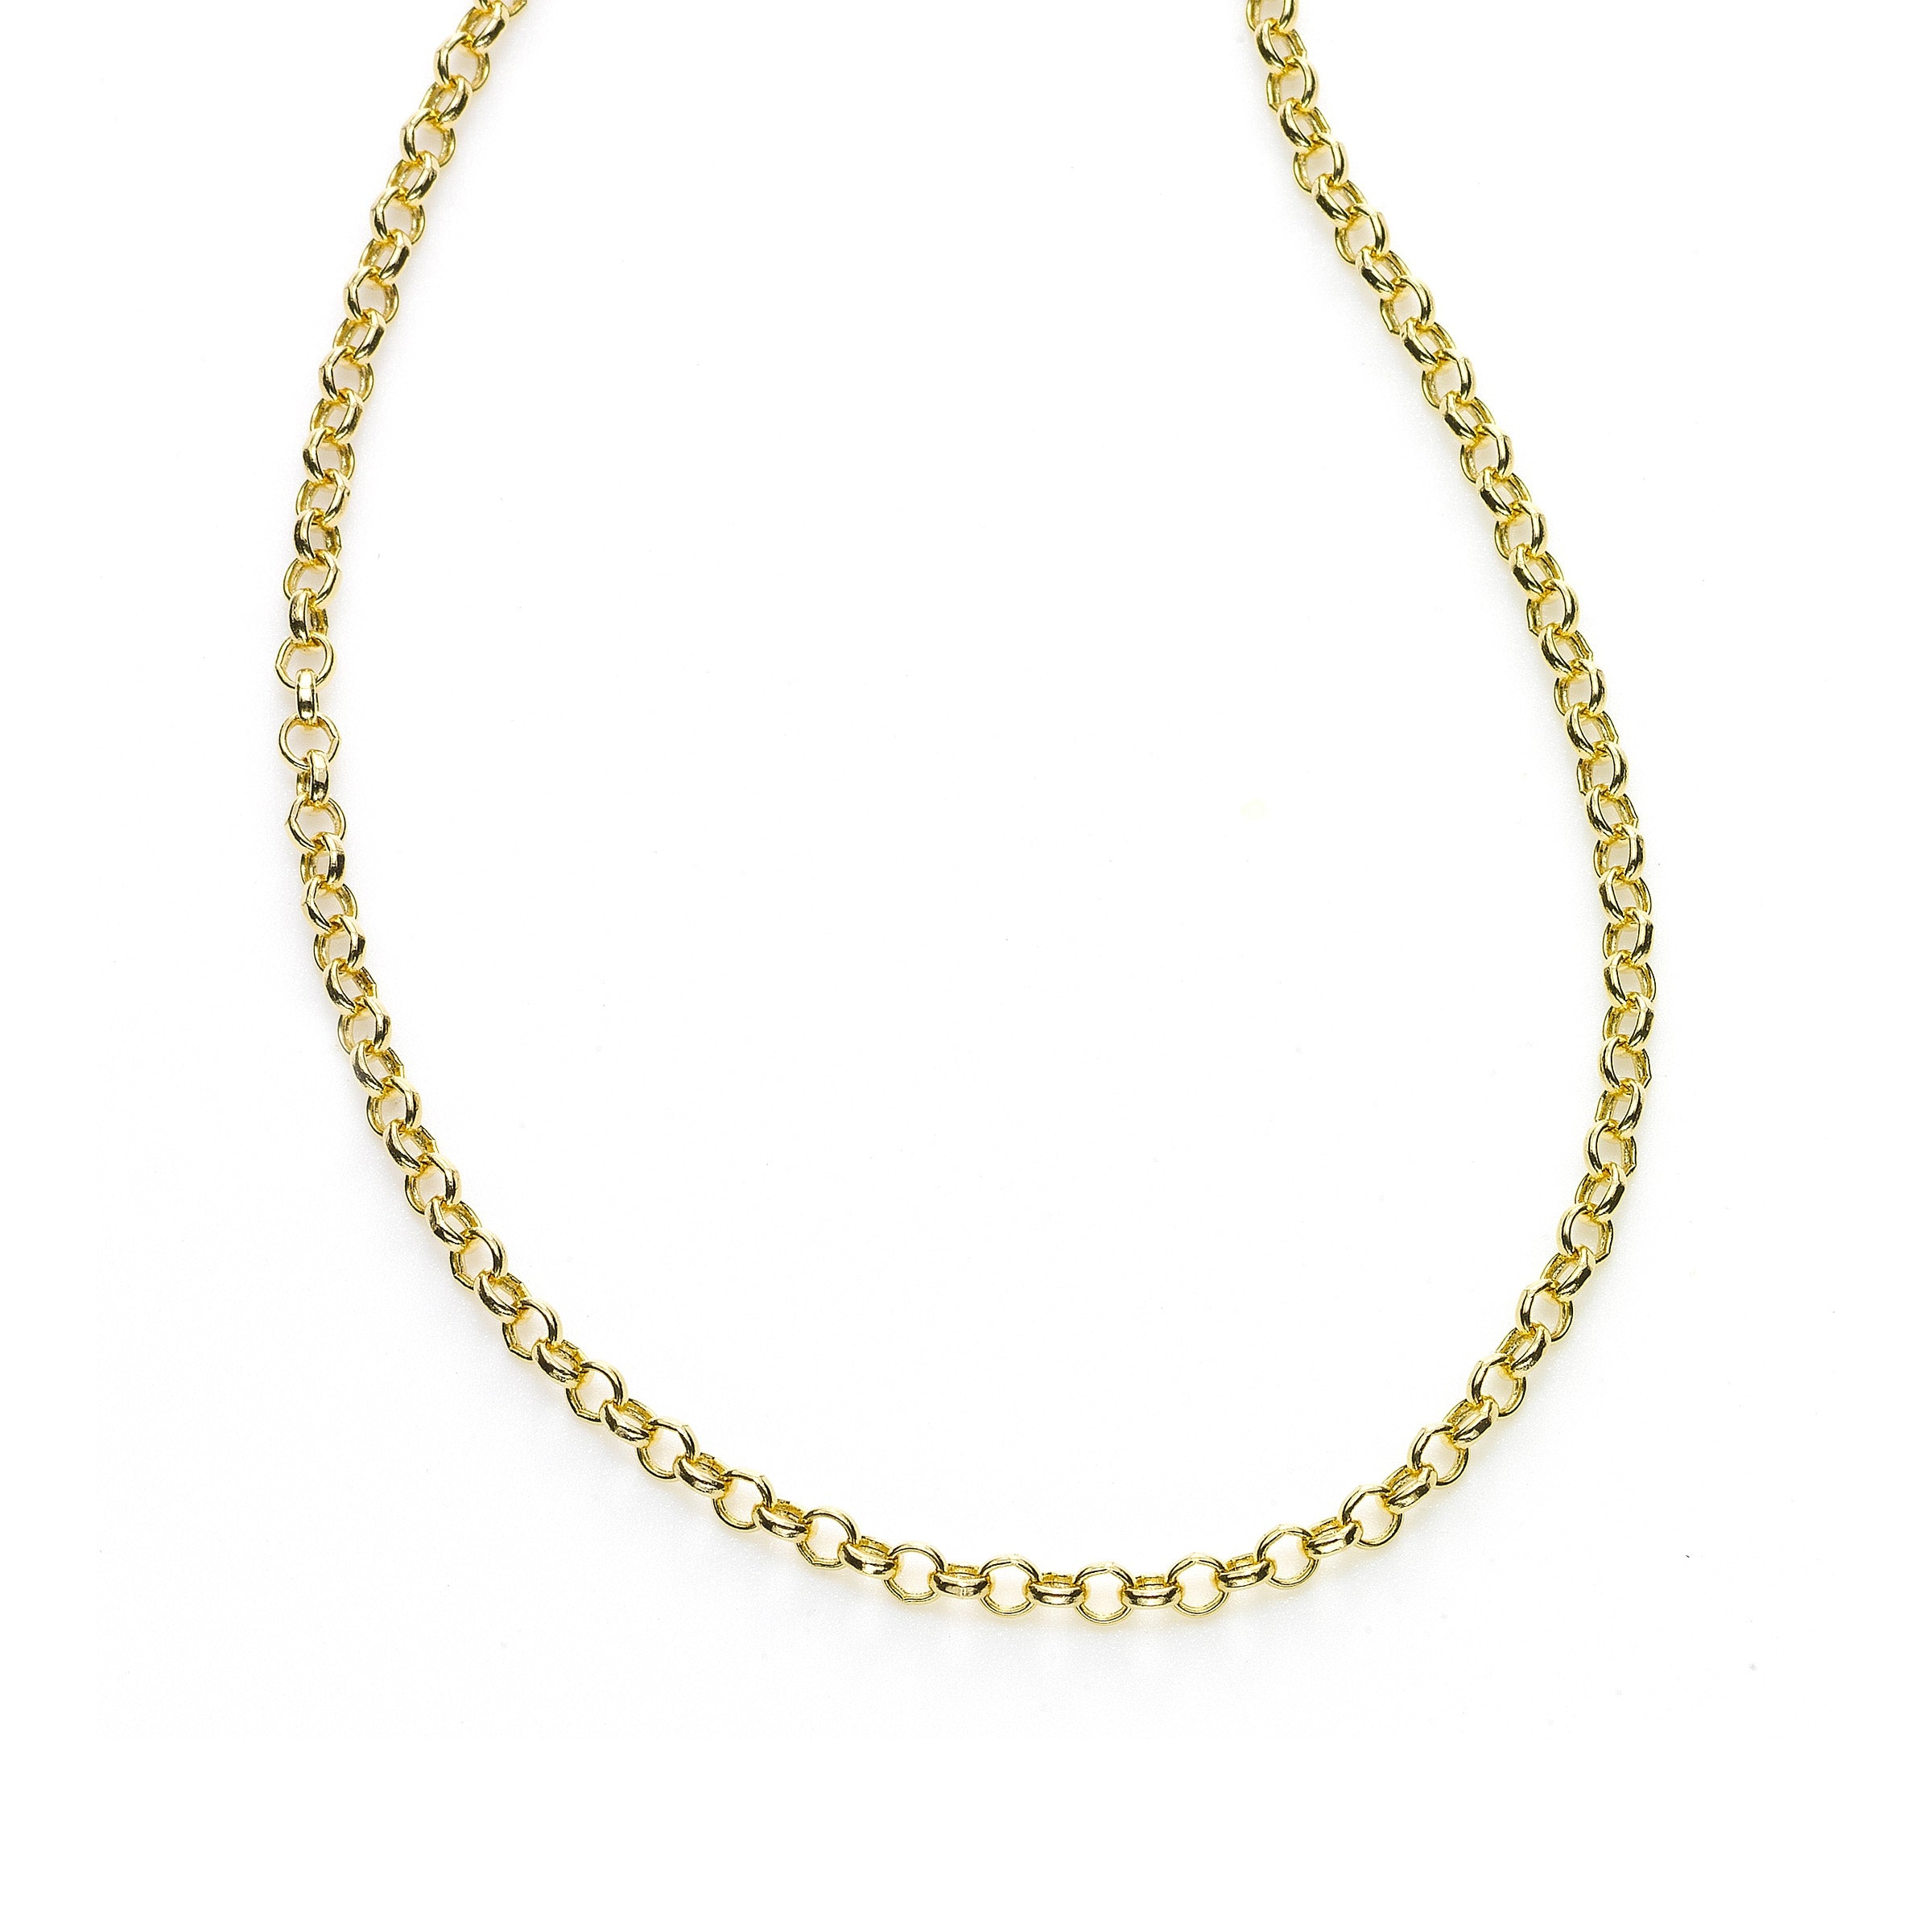 Lightweight Cable Chain, 18 Inches, 14K Yellow Gold